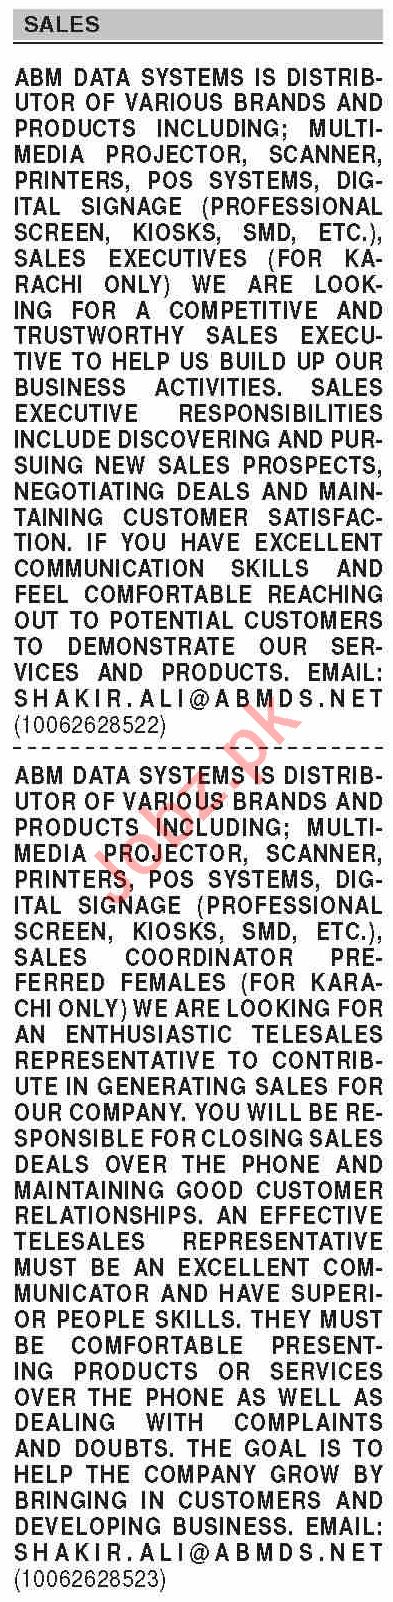 Dawn Sunday Classified Ads 7 March 2021 for Sales Staff